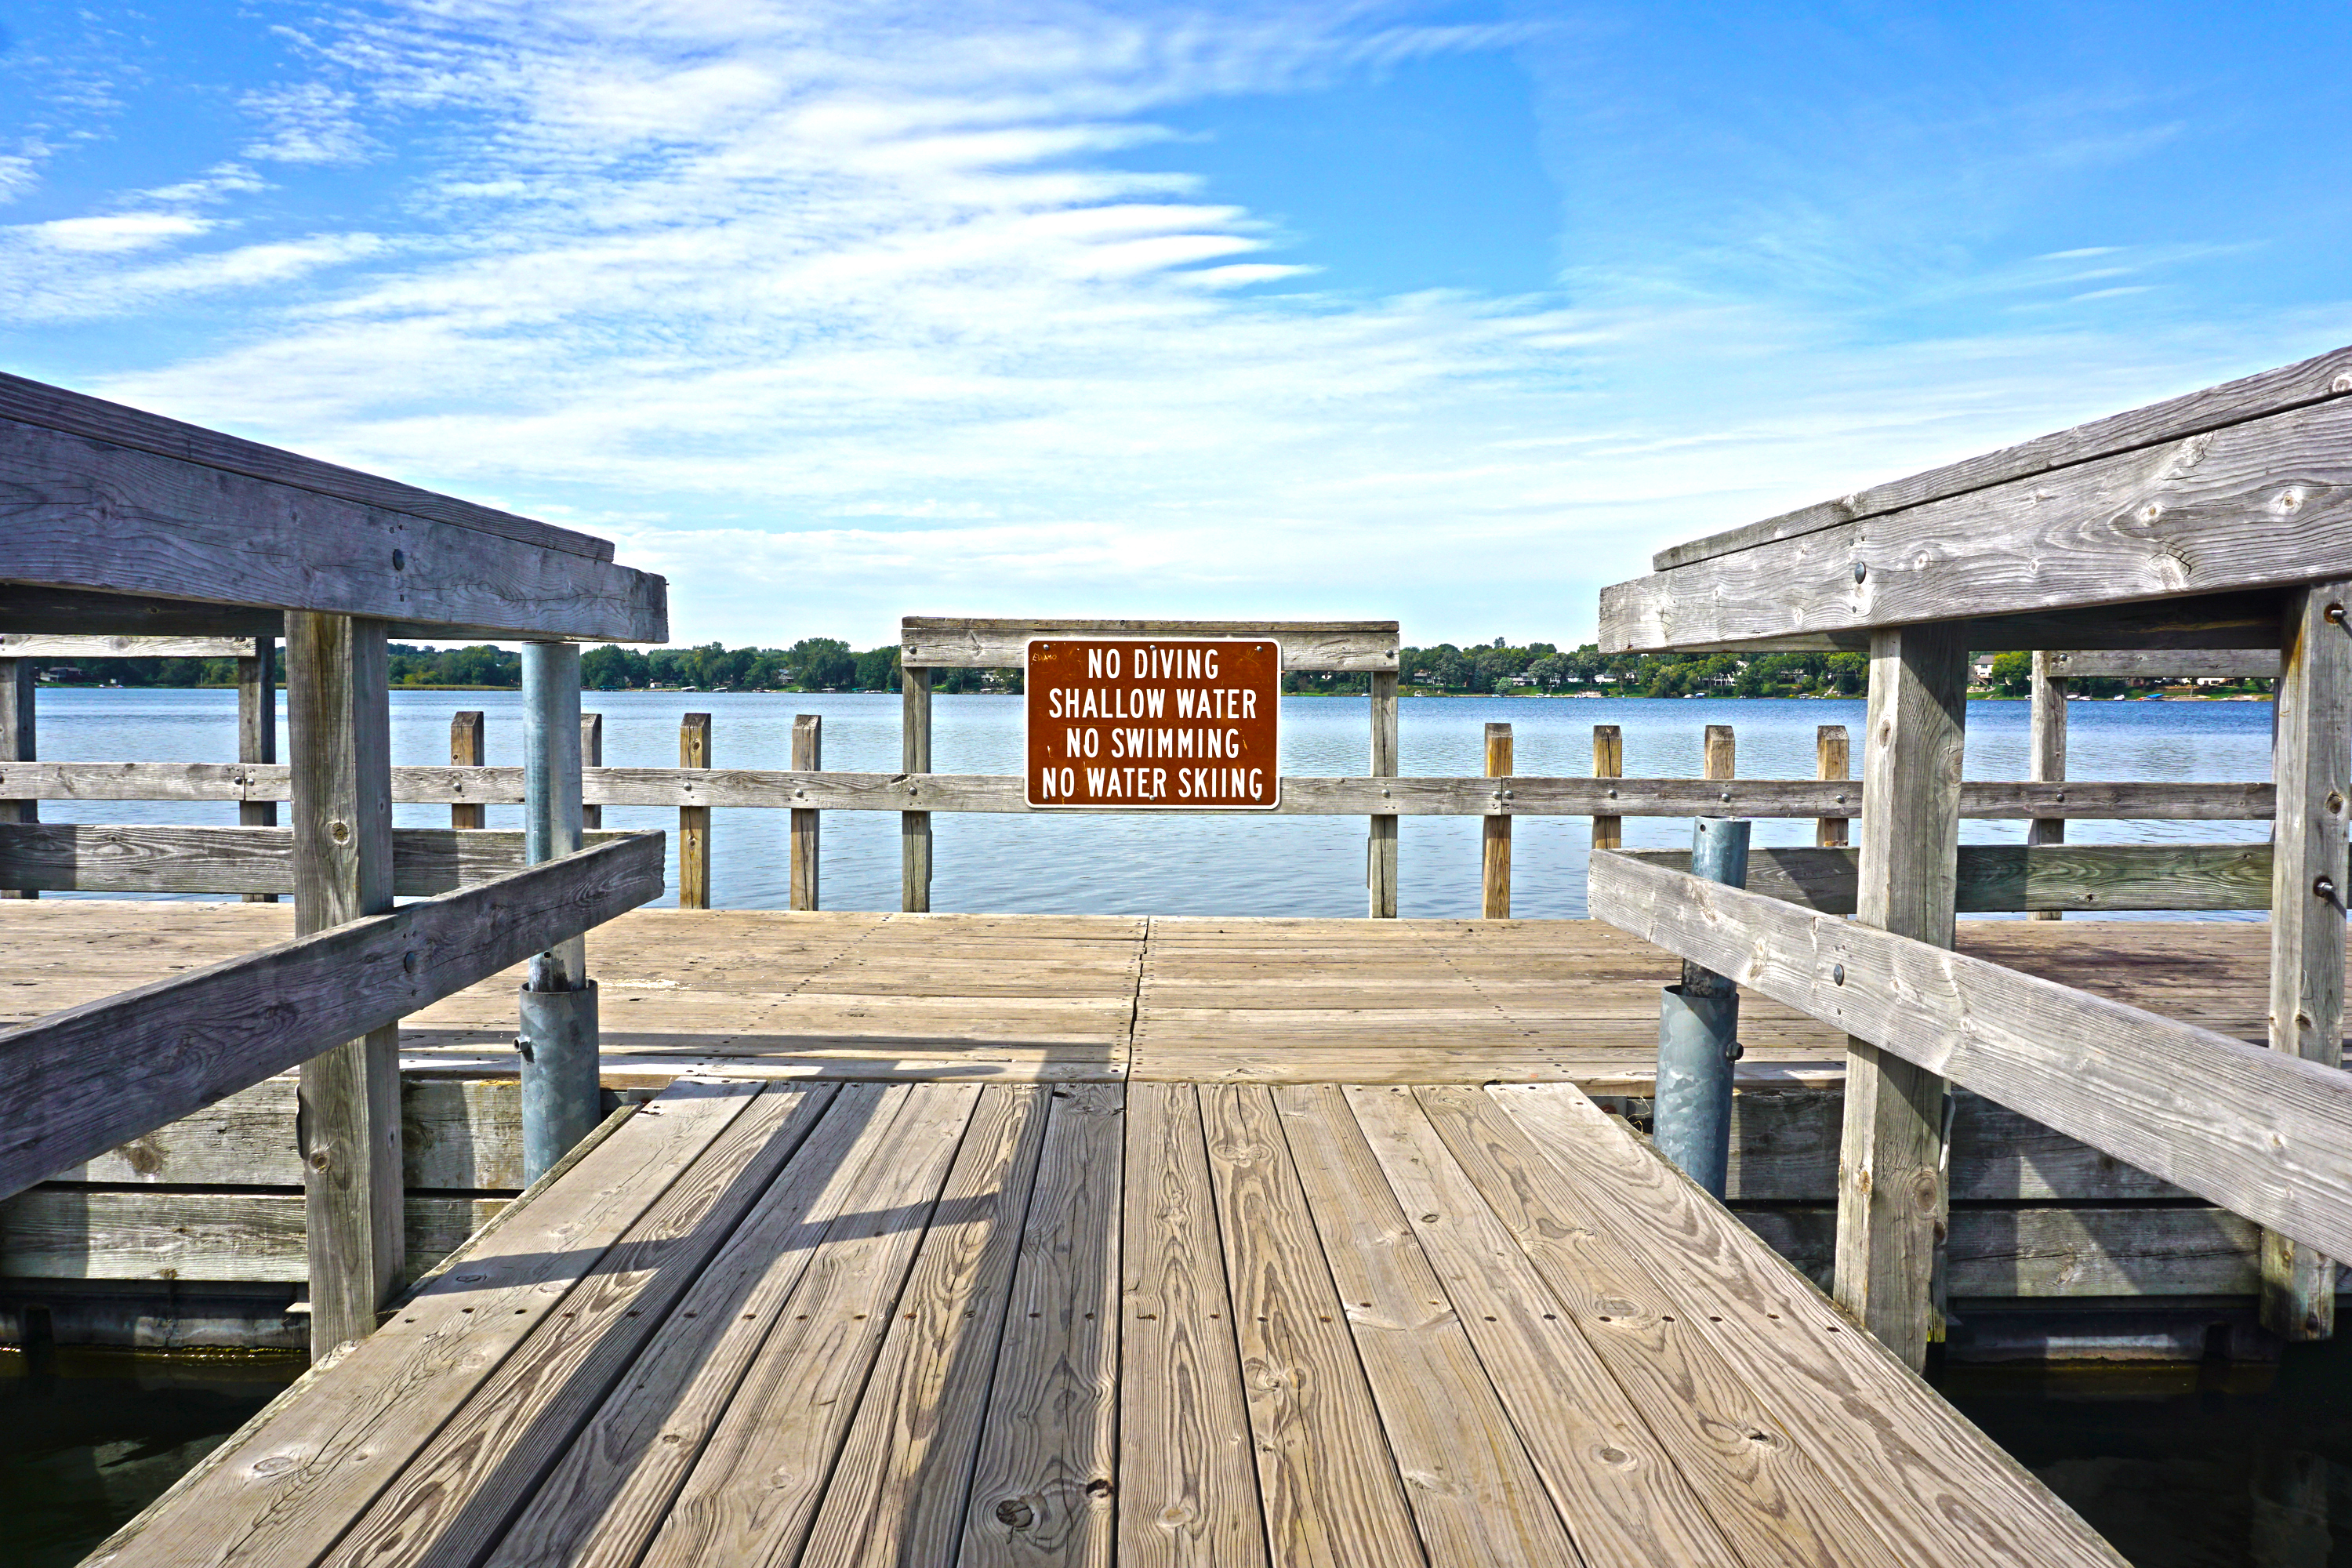 End of dock on a lake